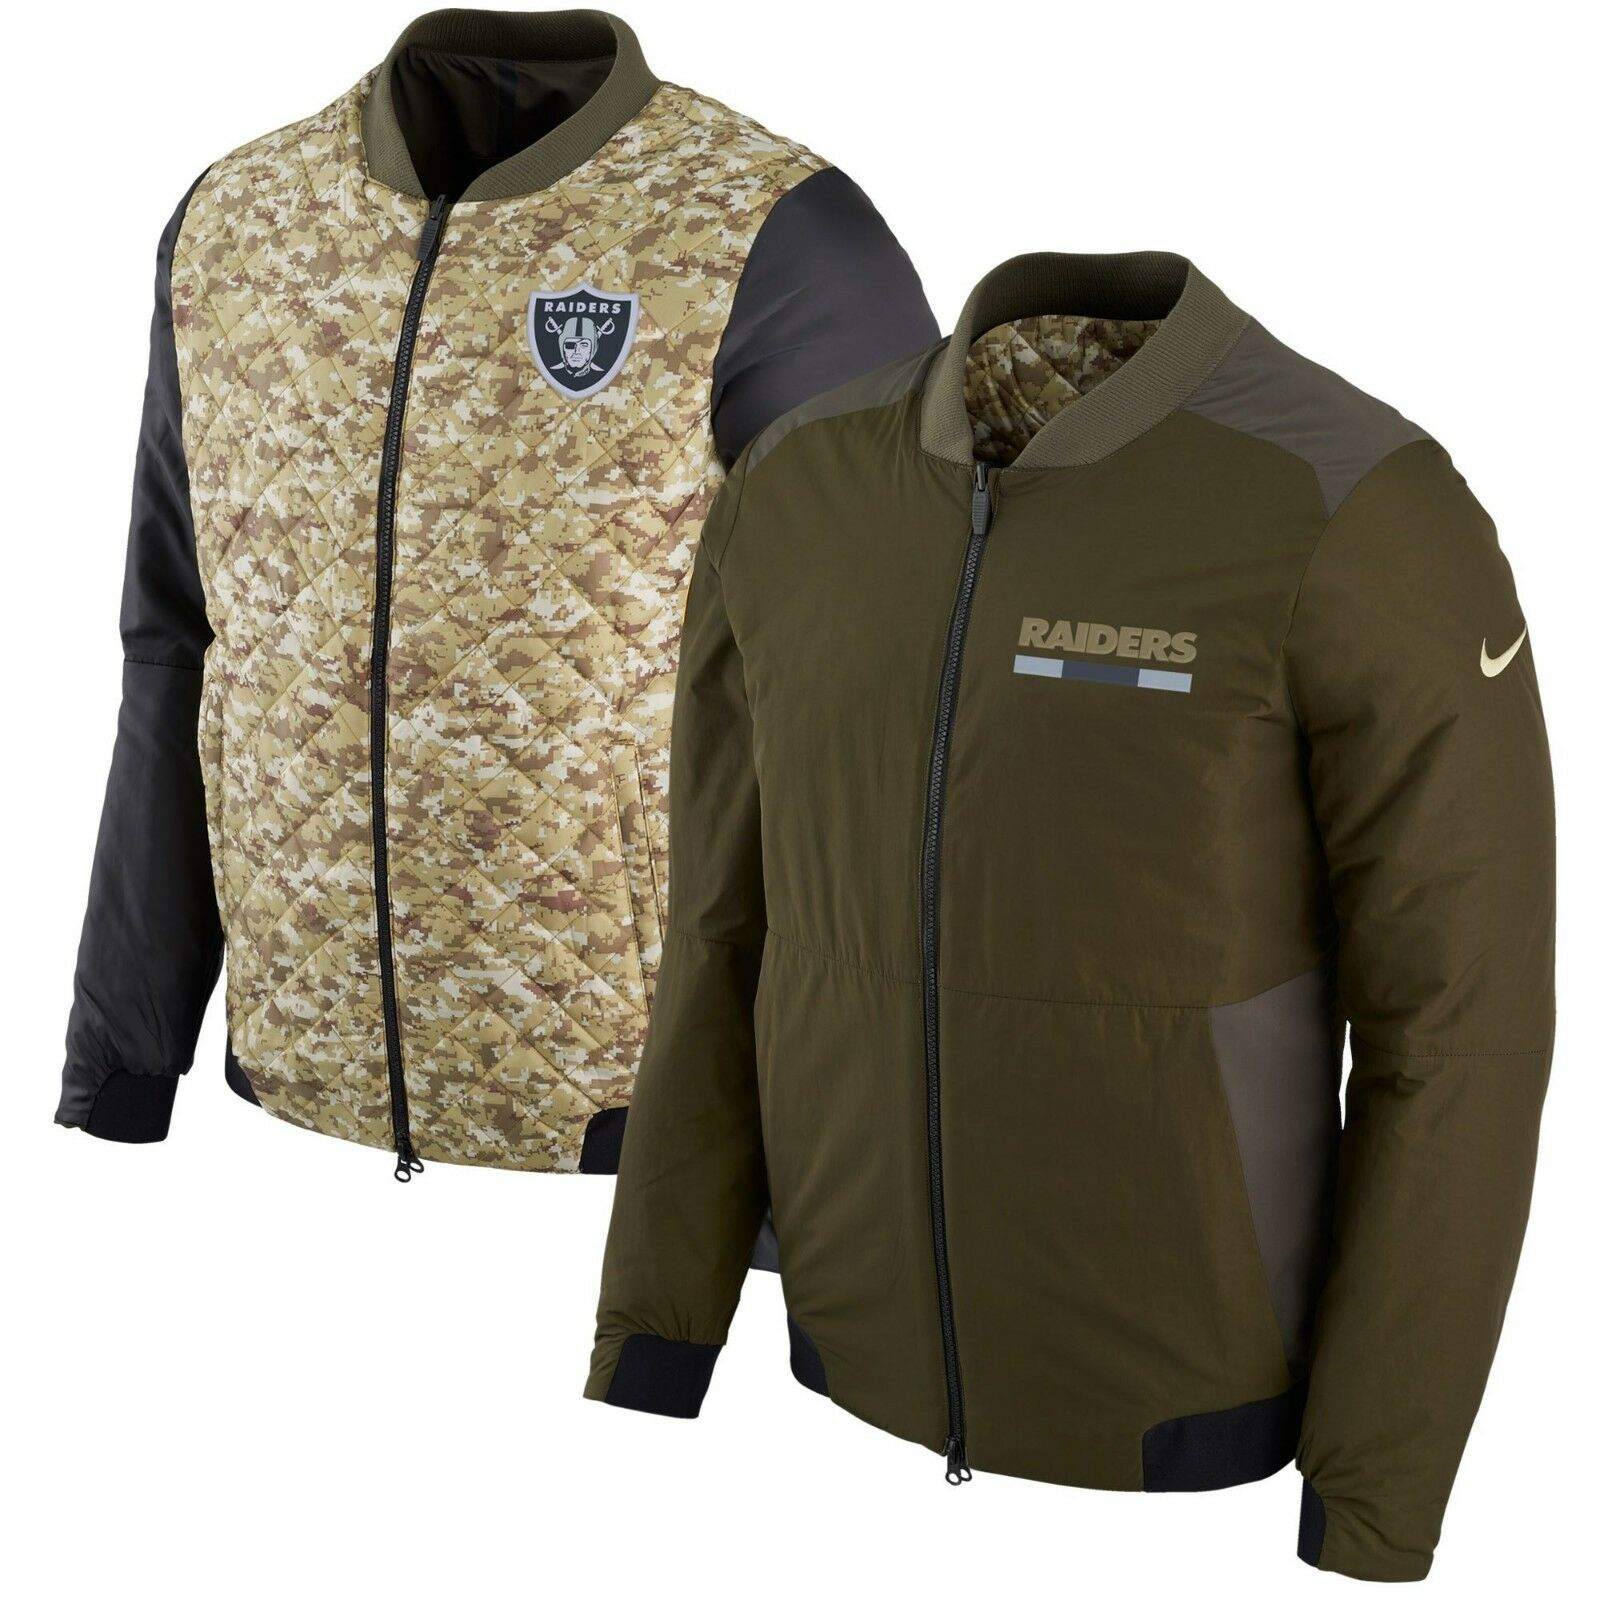 NIKE NFL Salute to Service 2017 Men's Reversible Bomber Jacket Limited STS New